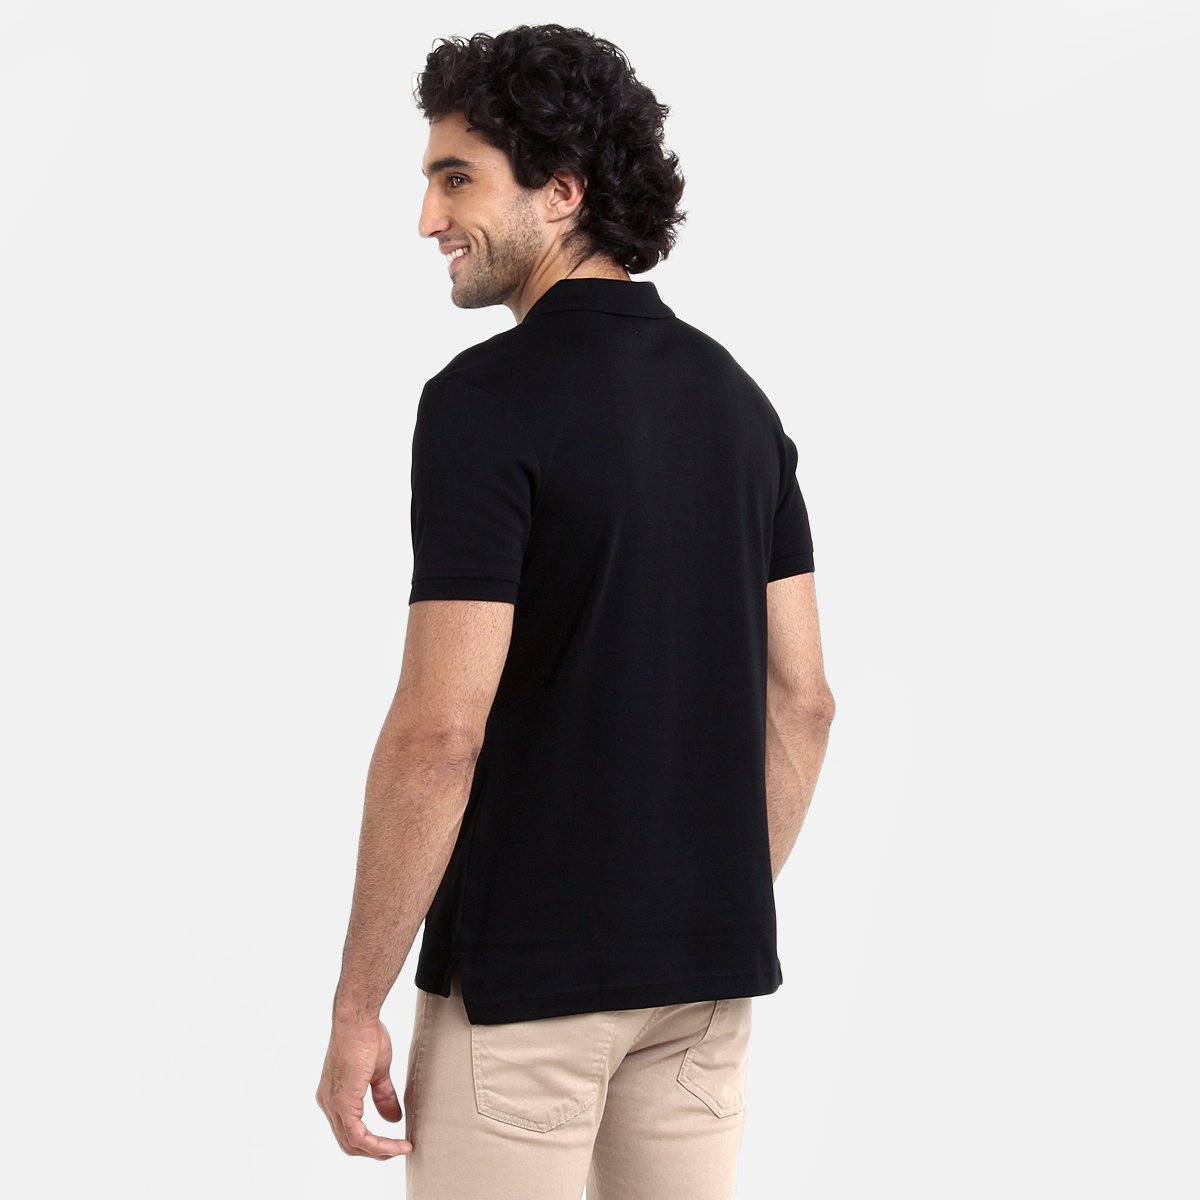 Camisa Polo M. Officer By Miele - Compre Agora  ad2580abafb36